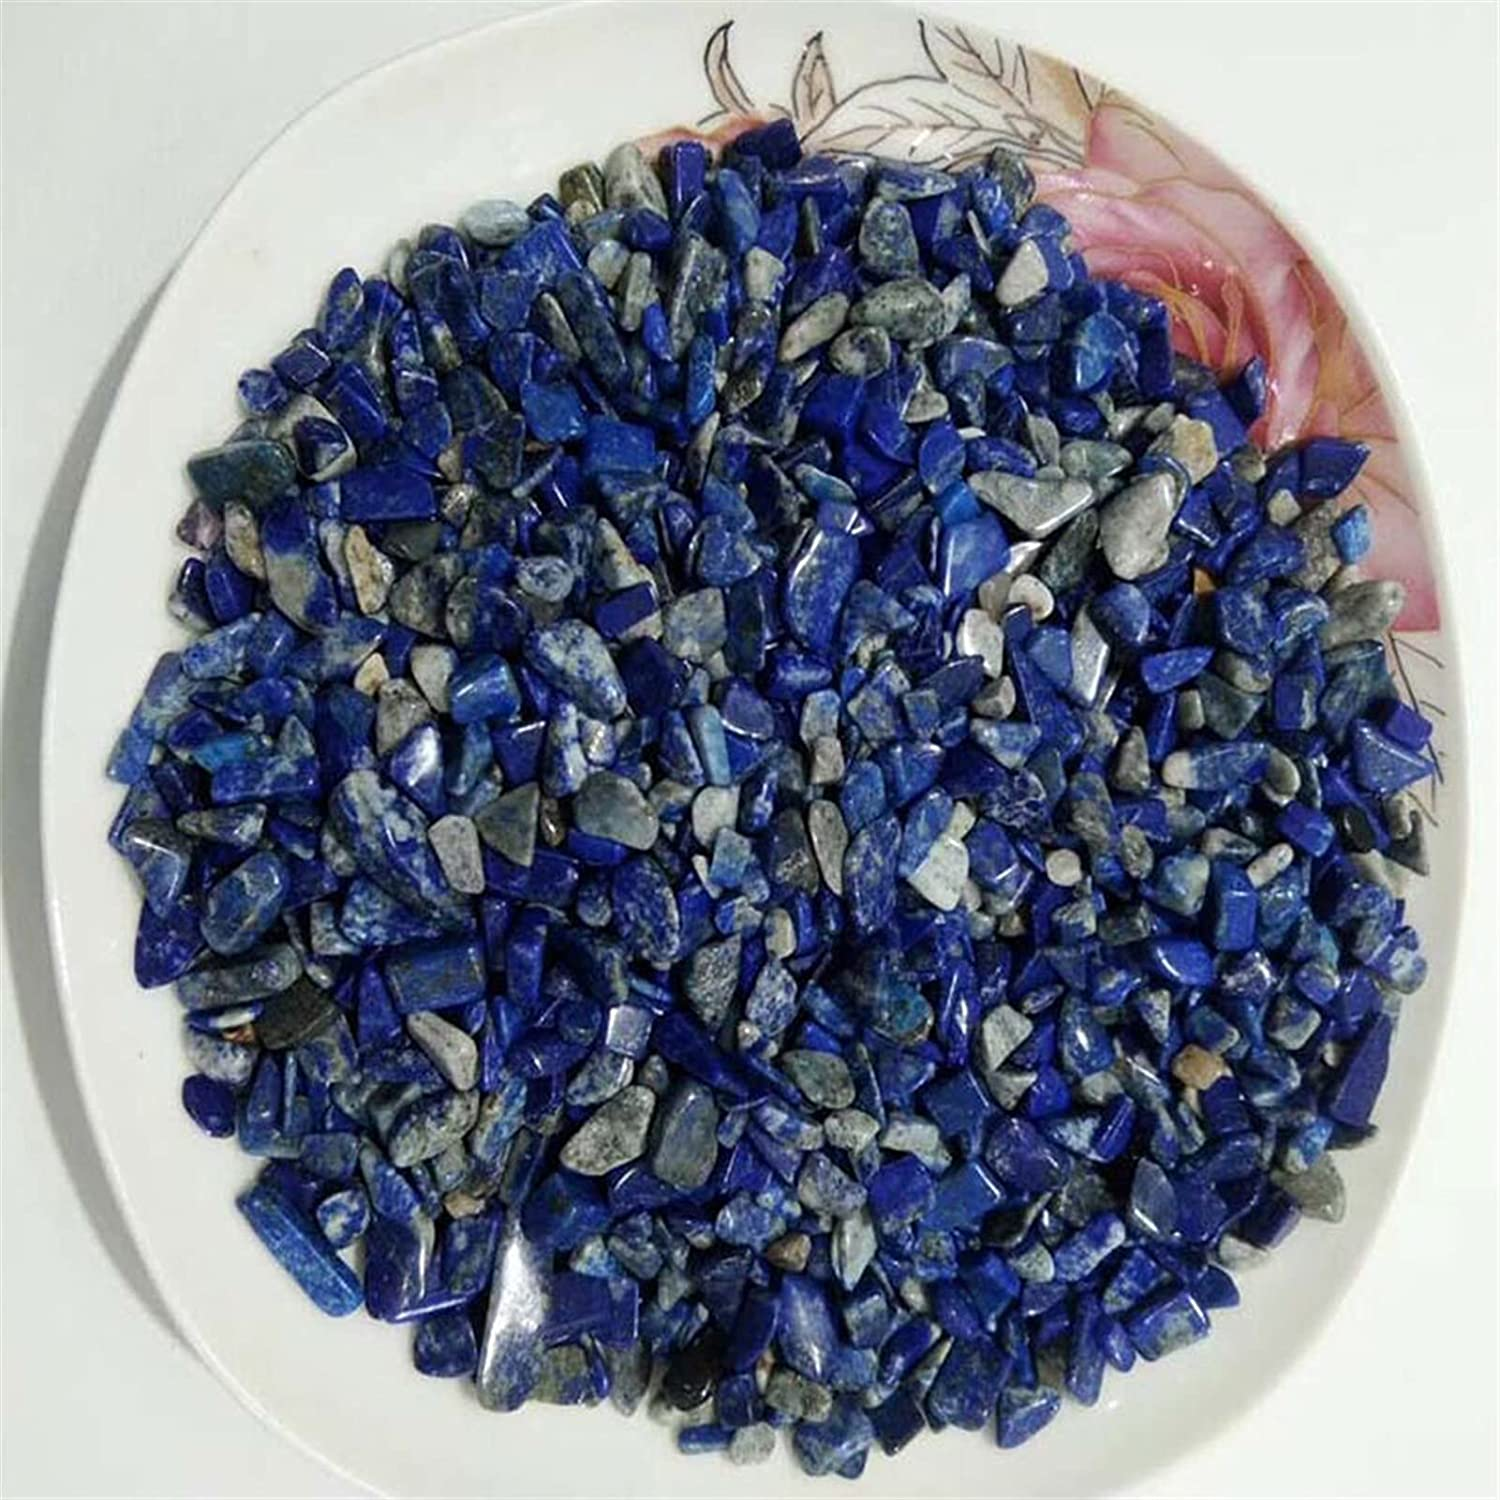 NEW Max 57% OFF before selling ☆ YSJJAXR Natural Crystal Stone 100g Lapis Pack Lazuli Lot